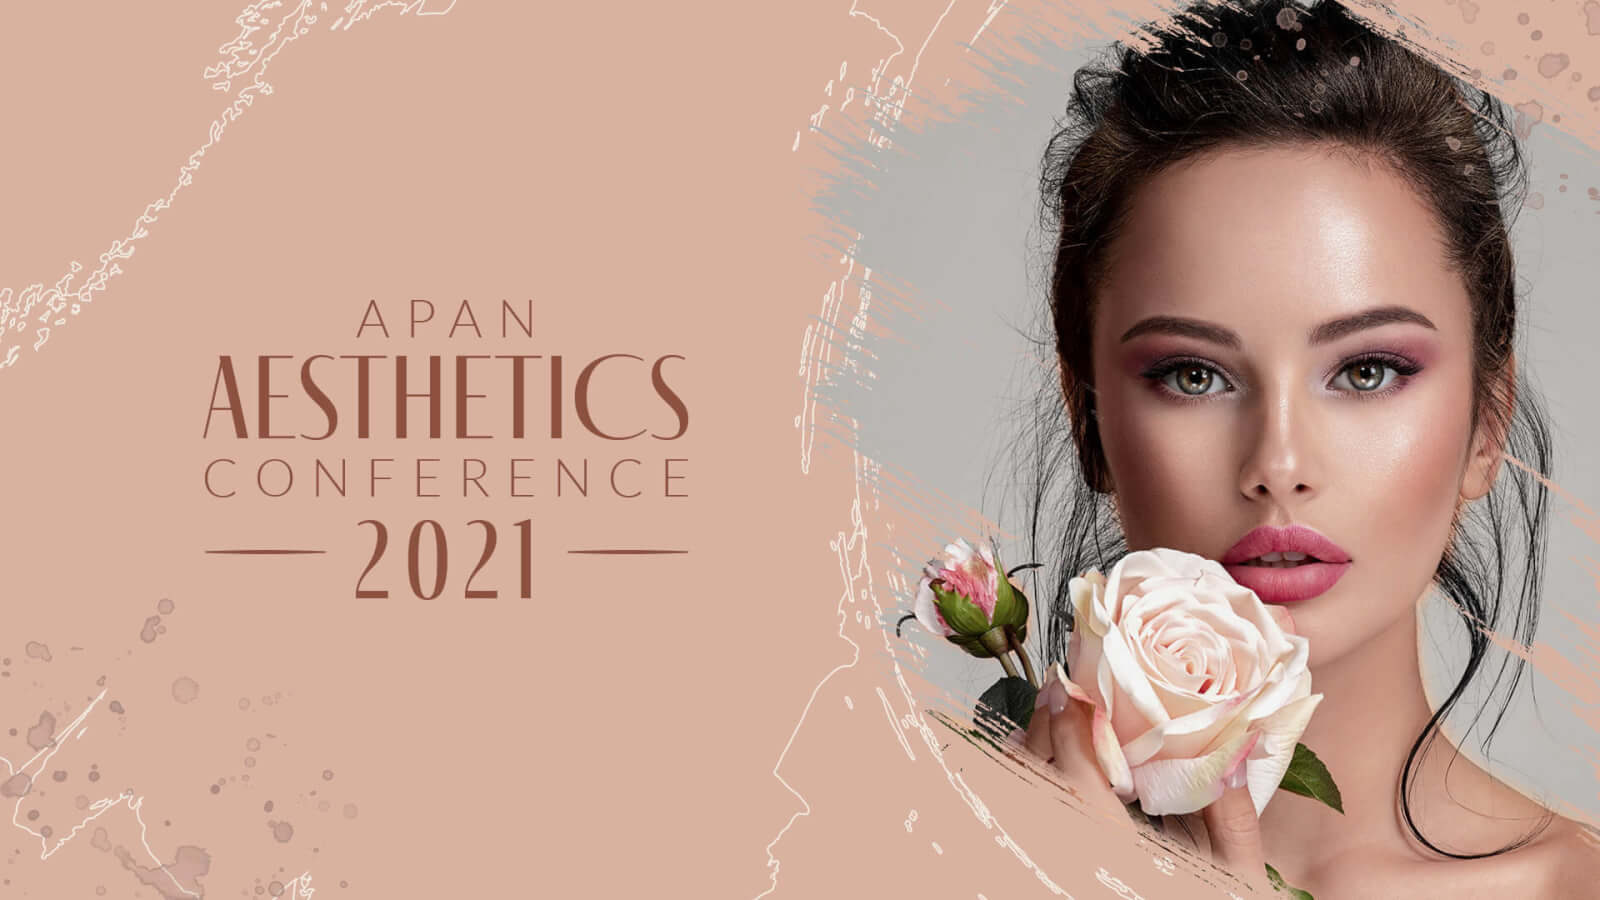 APAN Live Aesthetics Conference